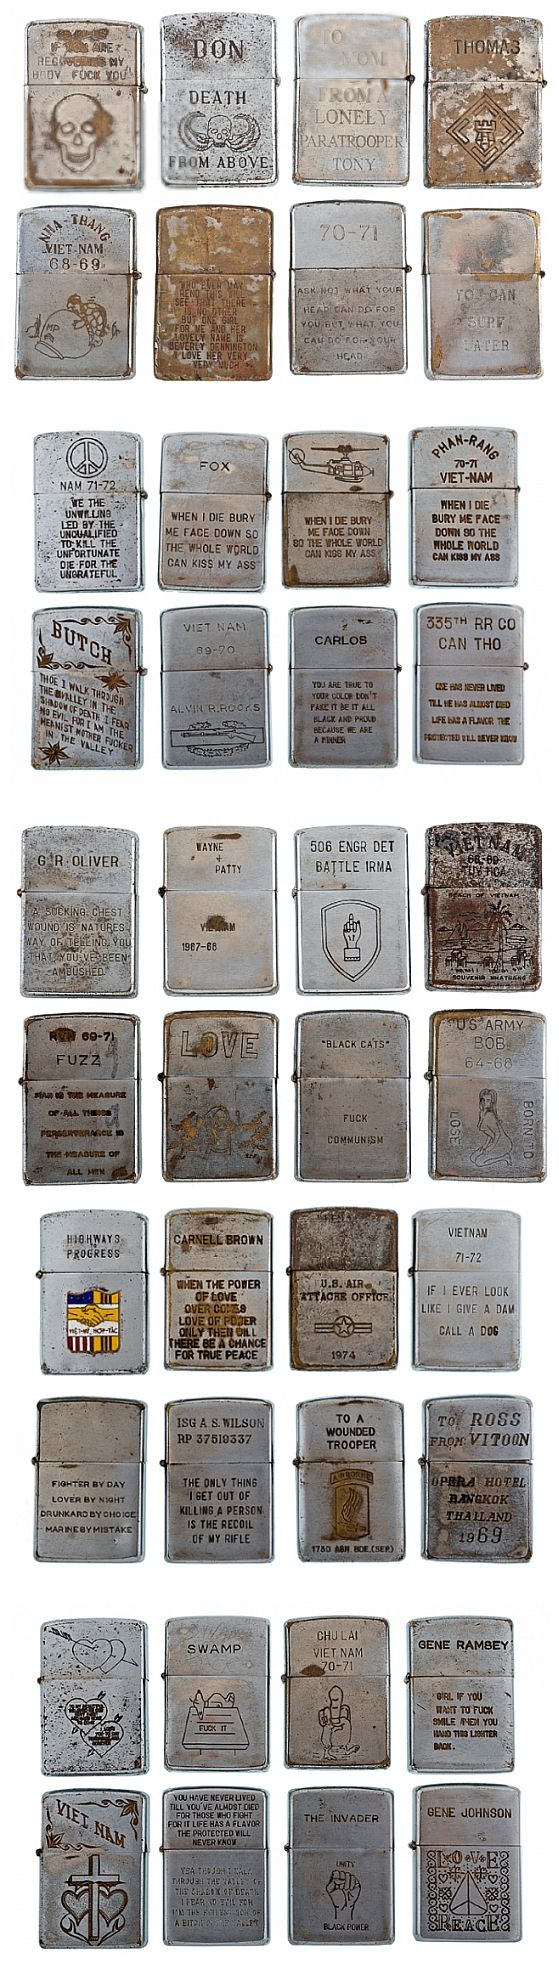 Vintage Vietnam Zippo Lighter Collection - sold at auction for more than 32K